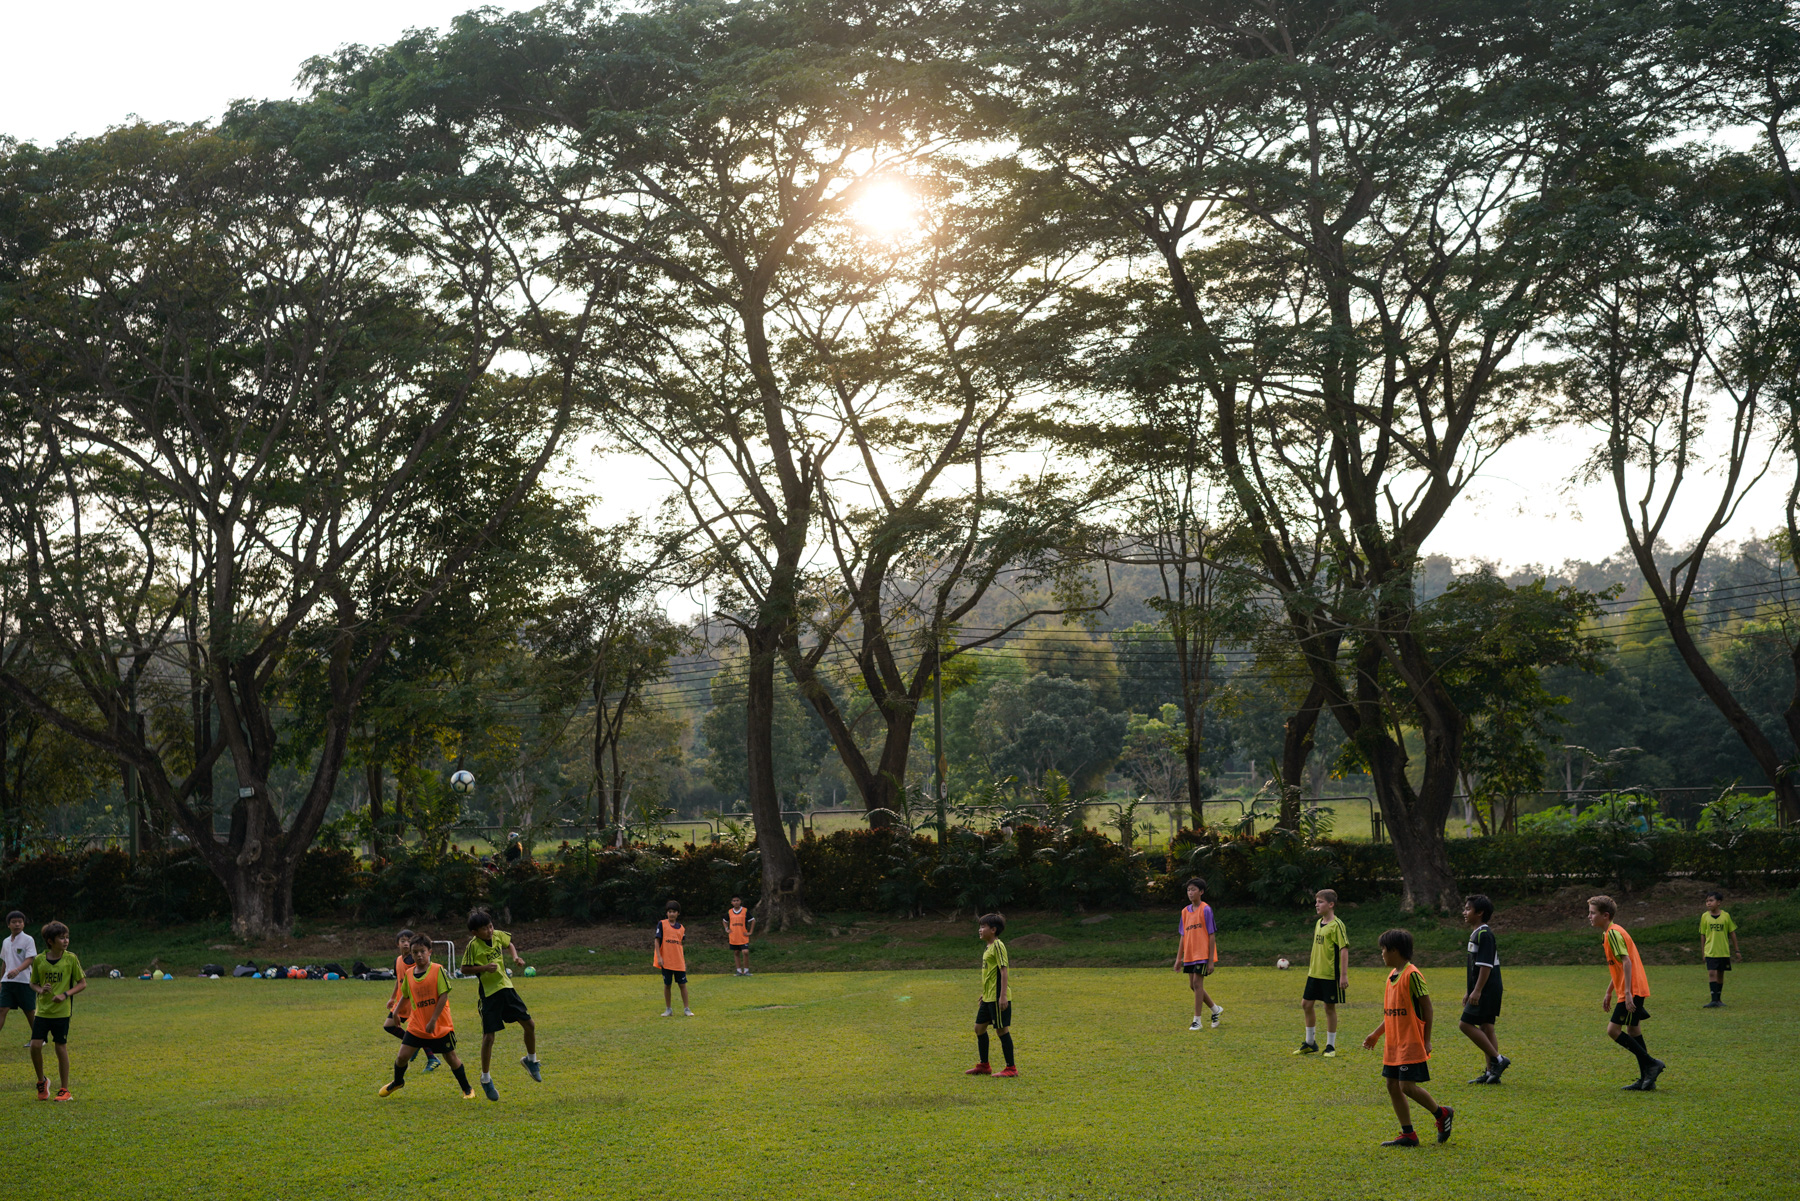 Students play soccer at Prem Tinsulanonda International School in Chiang Mai, January 17, 2019. The school's students hail from 31 countries.